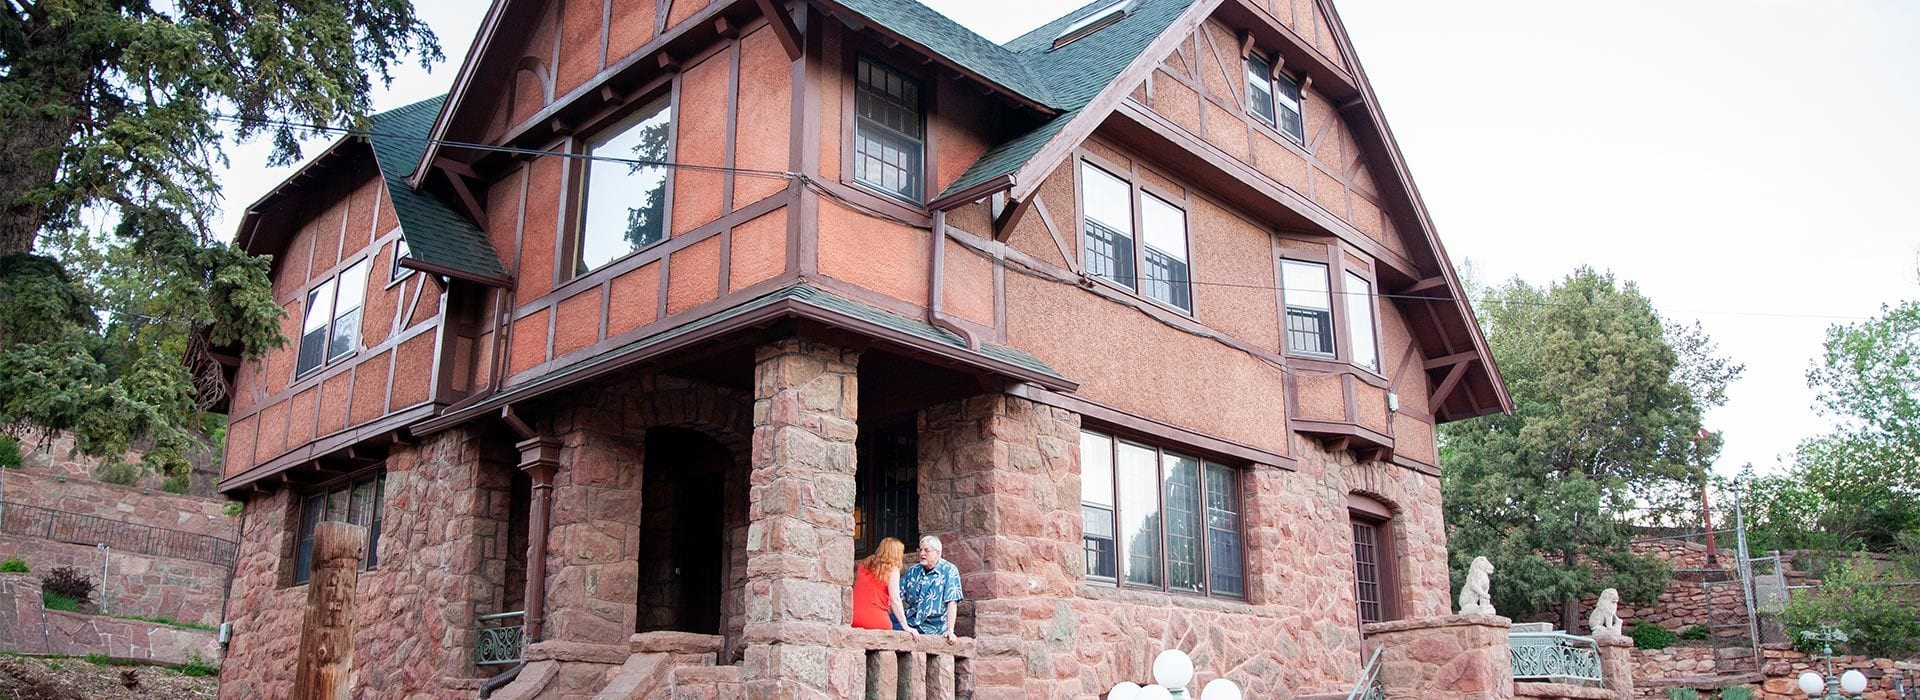 SunMountain Center Bed and Breakfast Manitou Springs CO